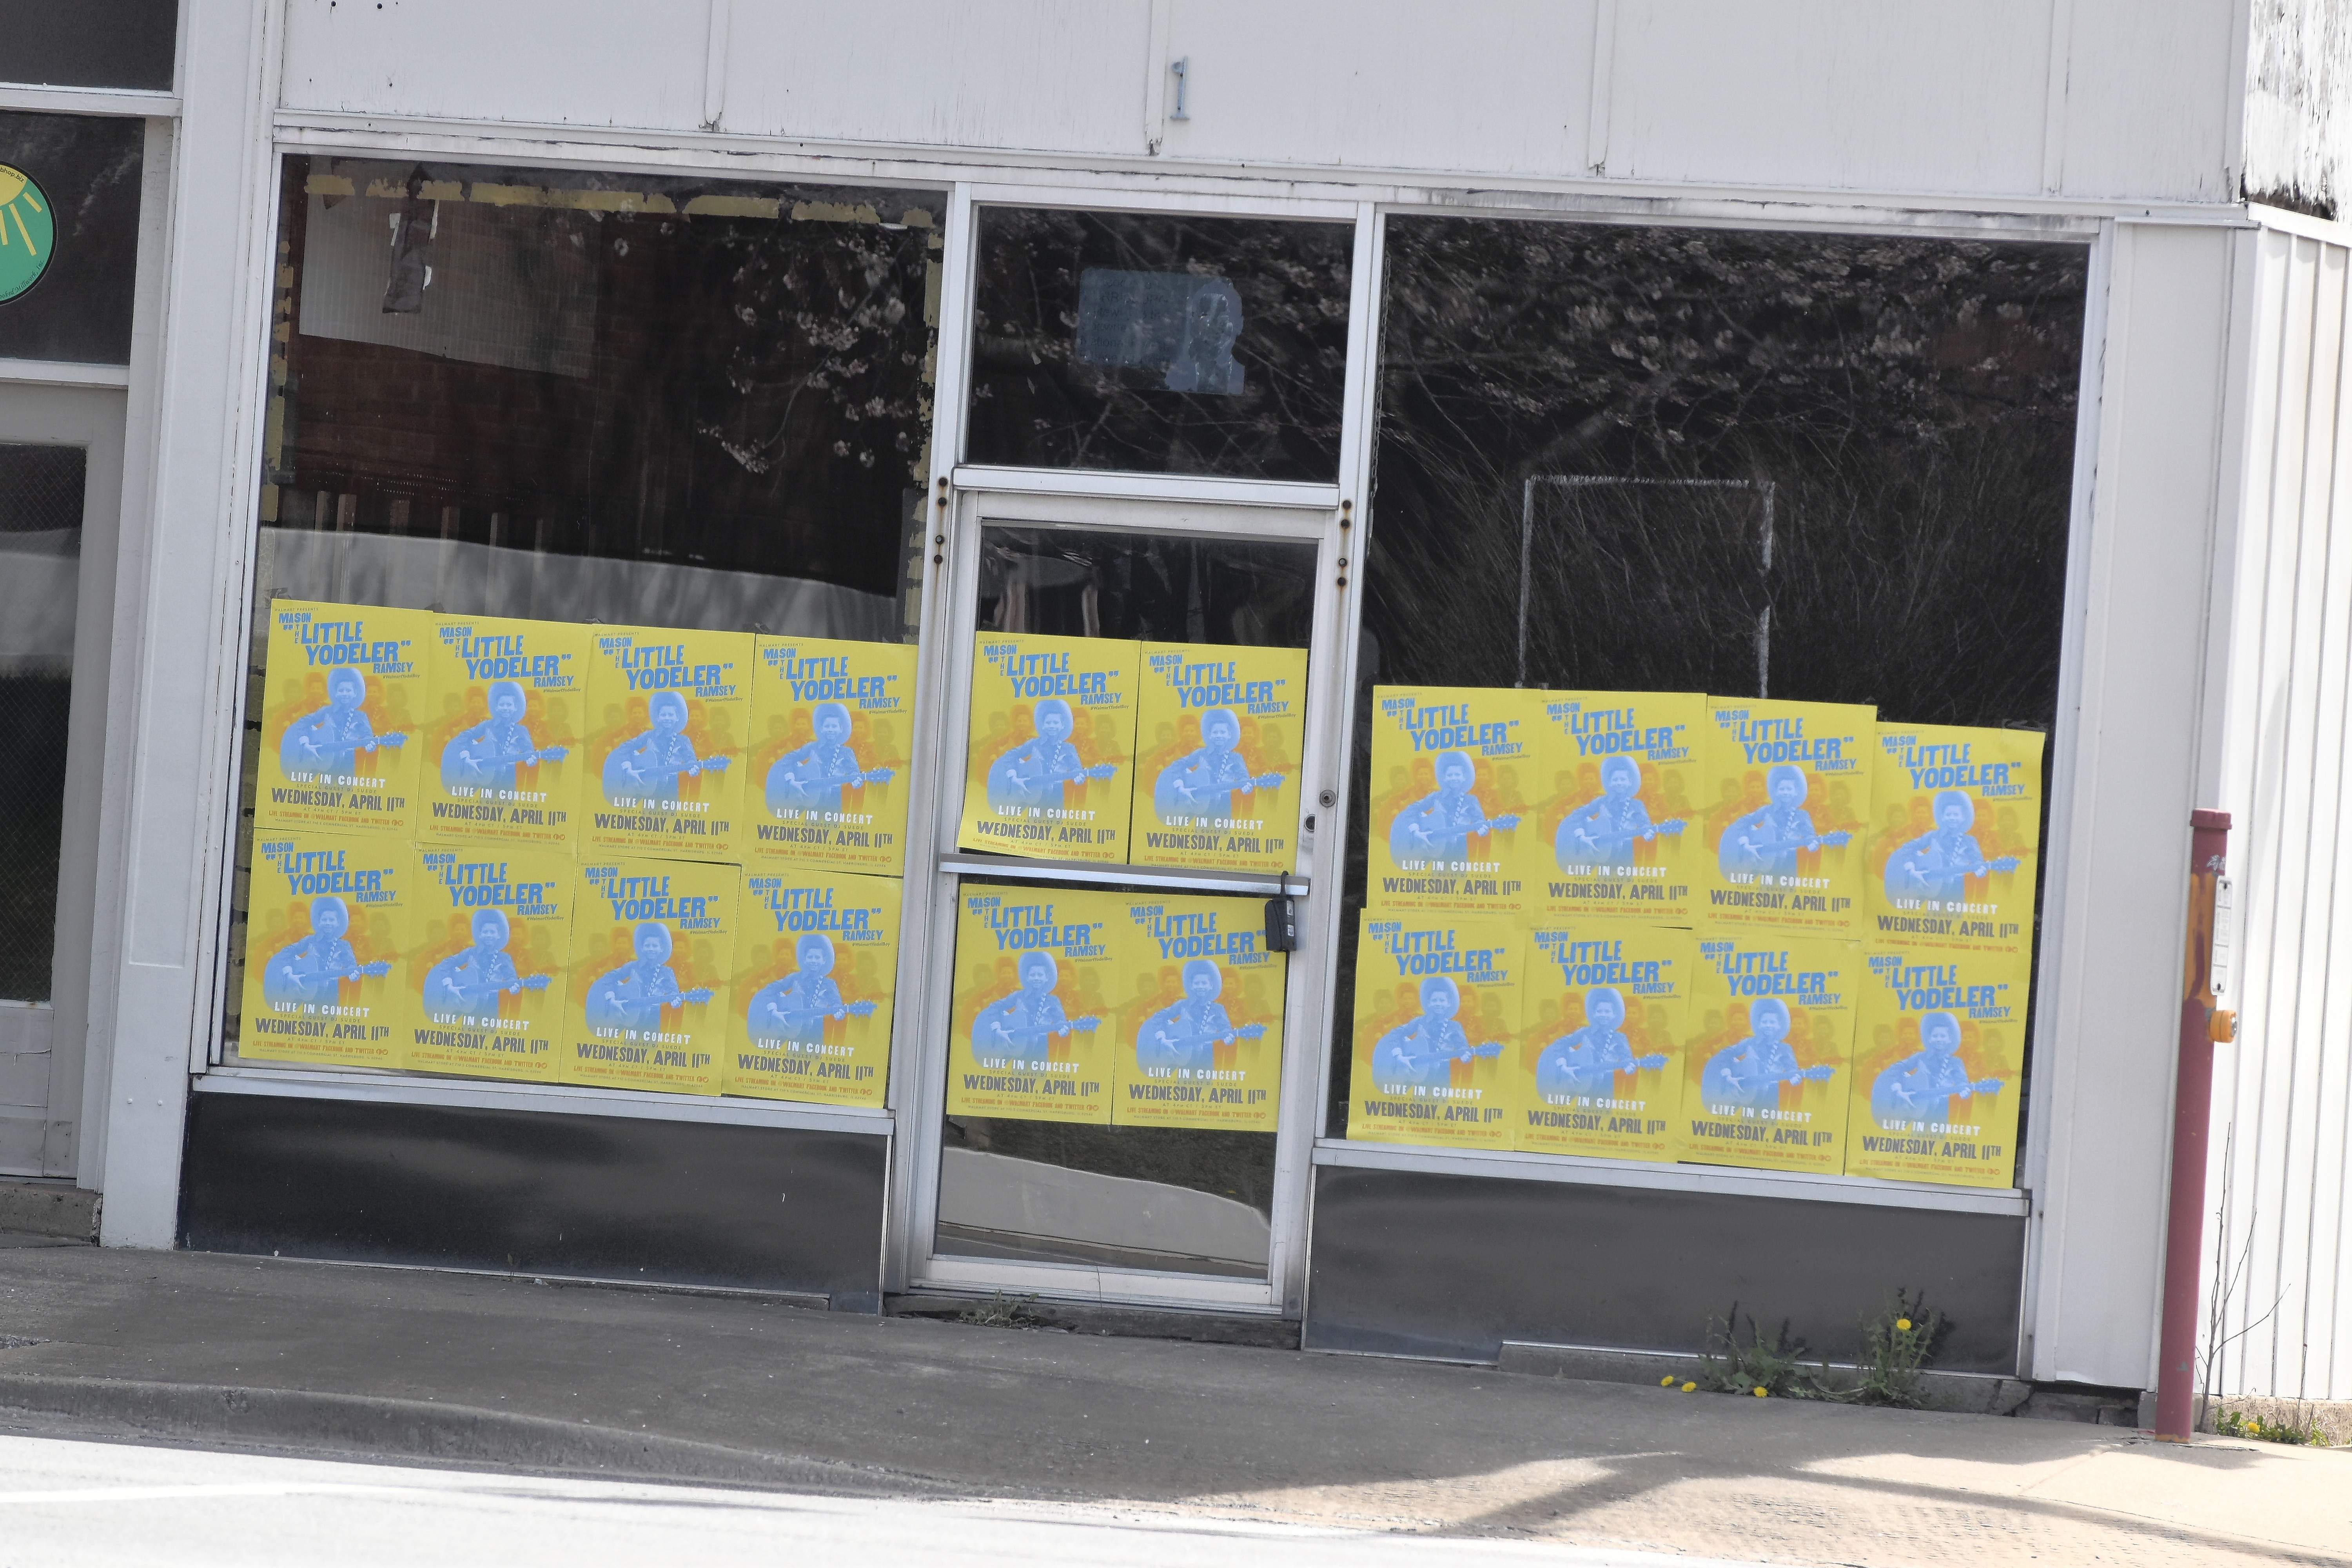 Storefronts with Mason Ramsey posters greet visitors to Harrisburg Wednesday.